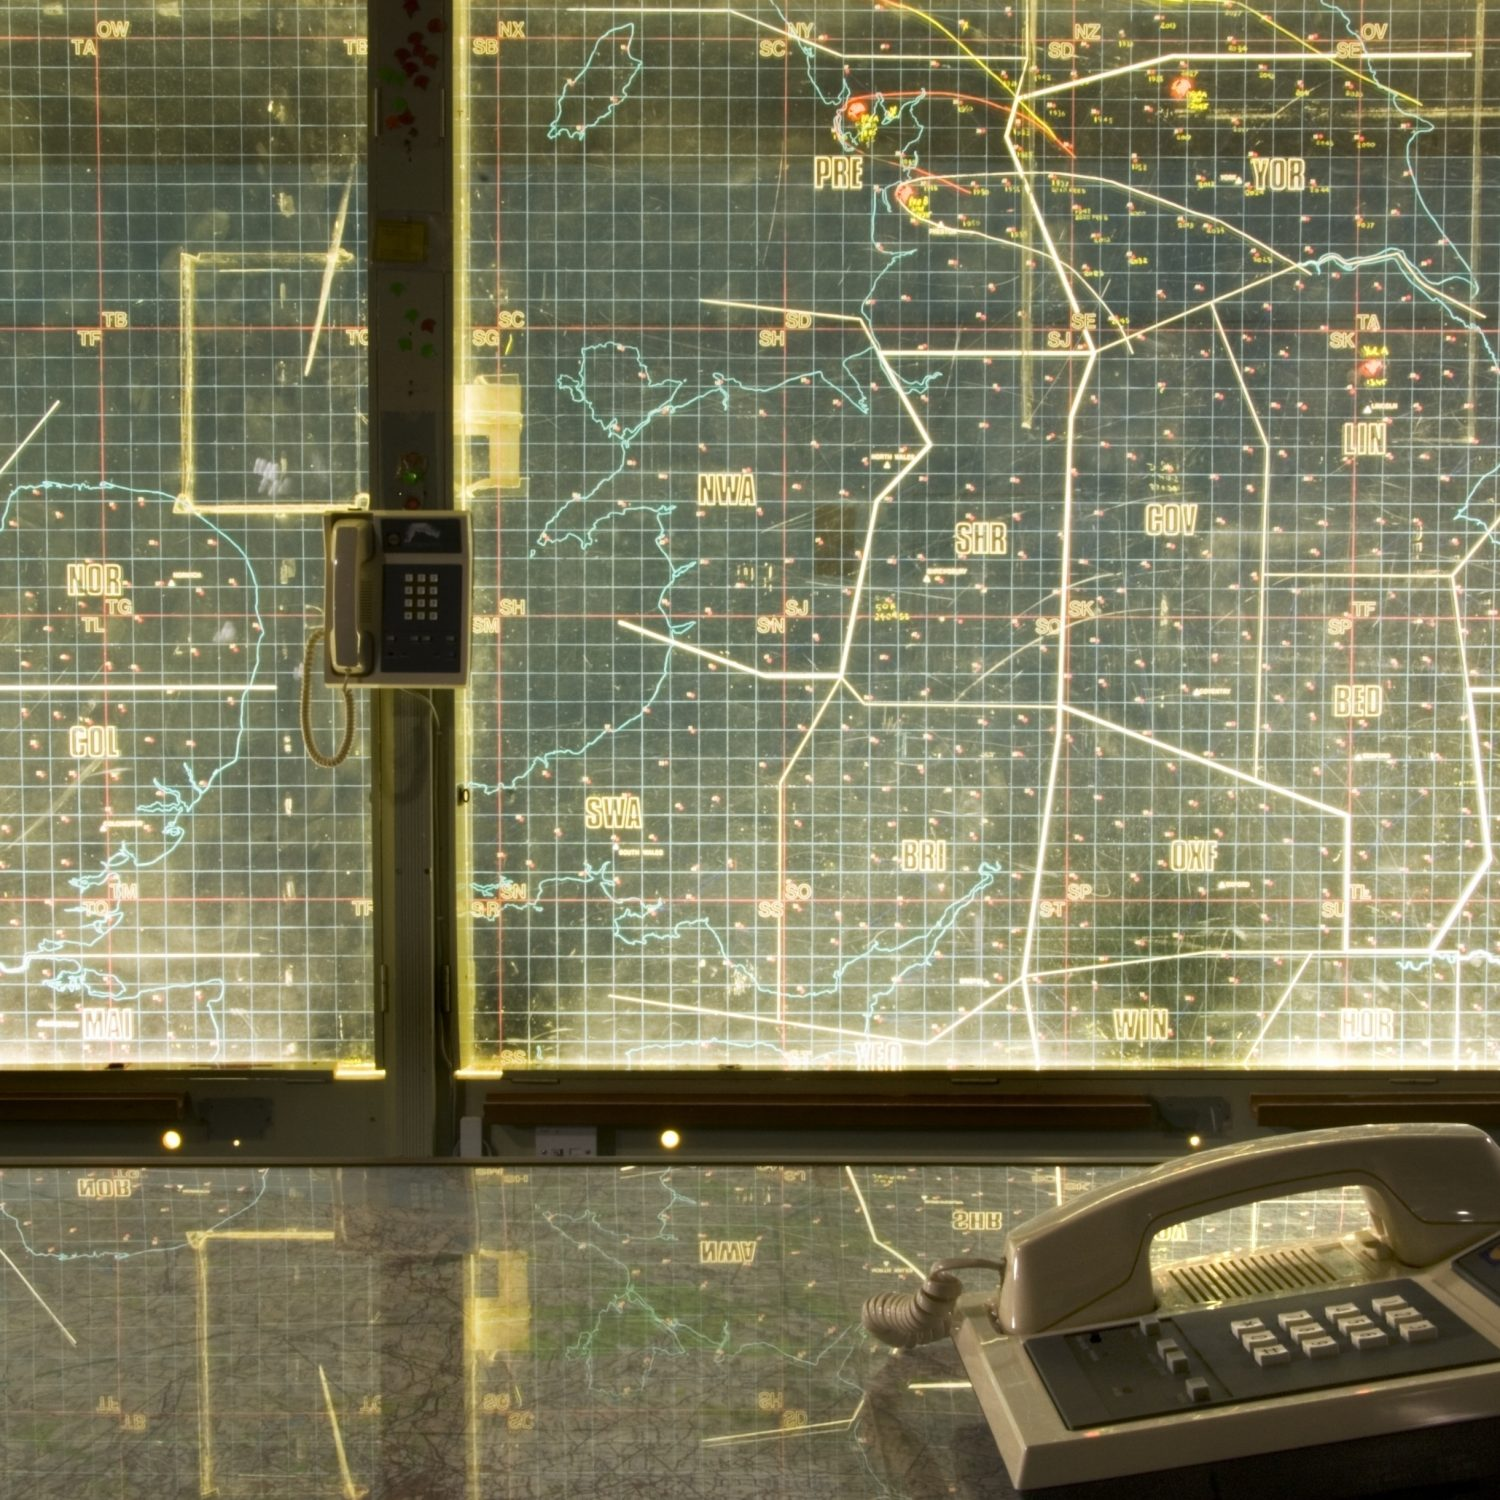 York Cold War Bunker, View of control room showing monitoring and communications equipment.